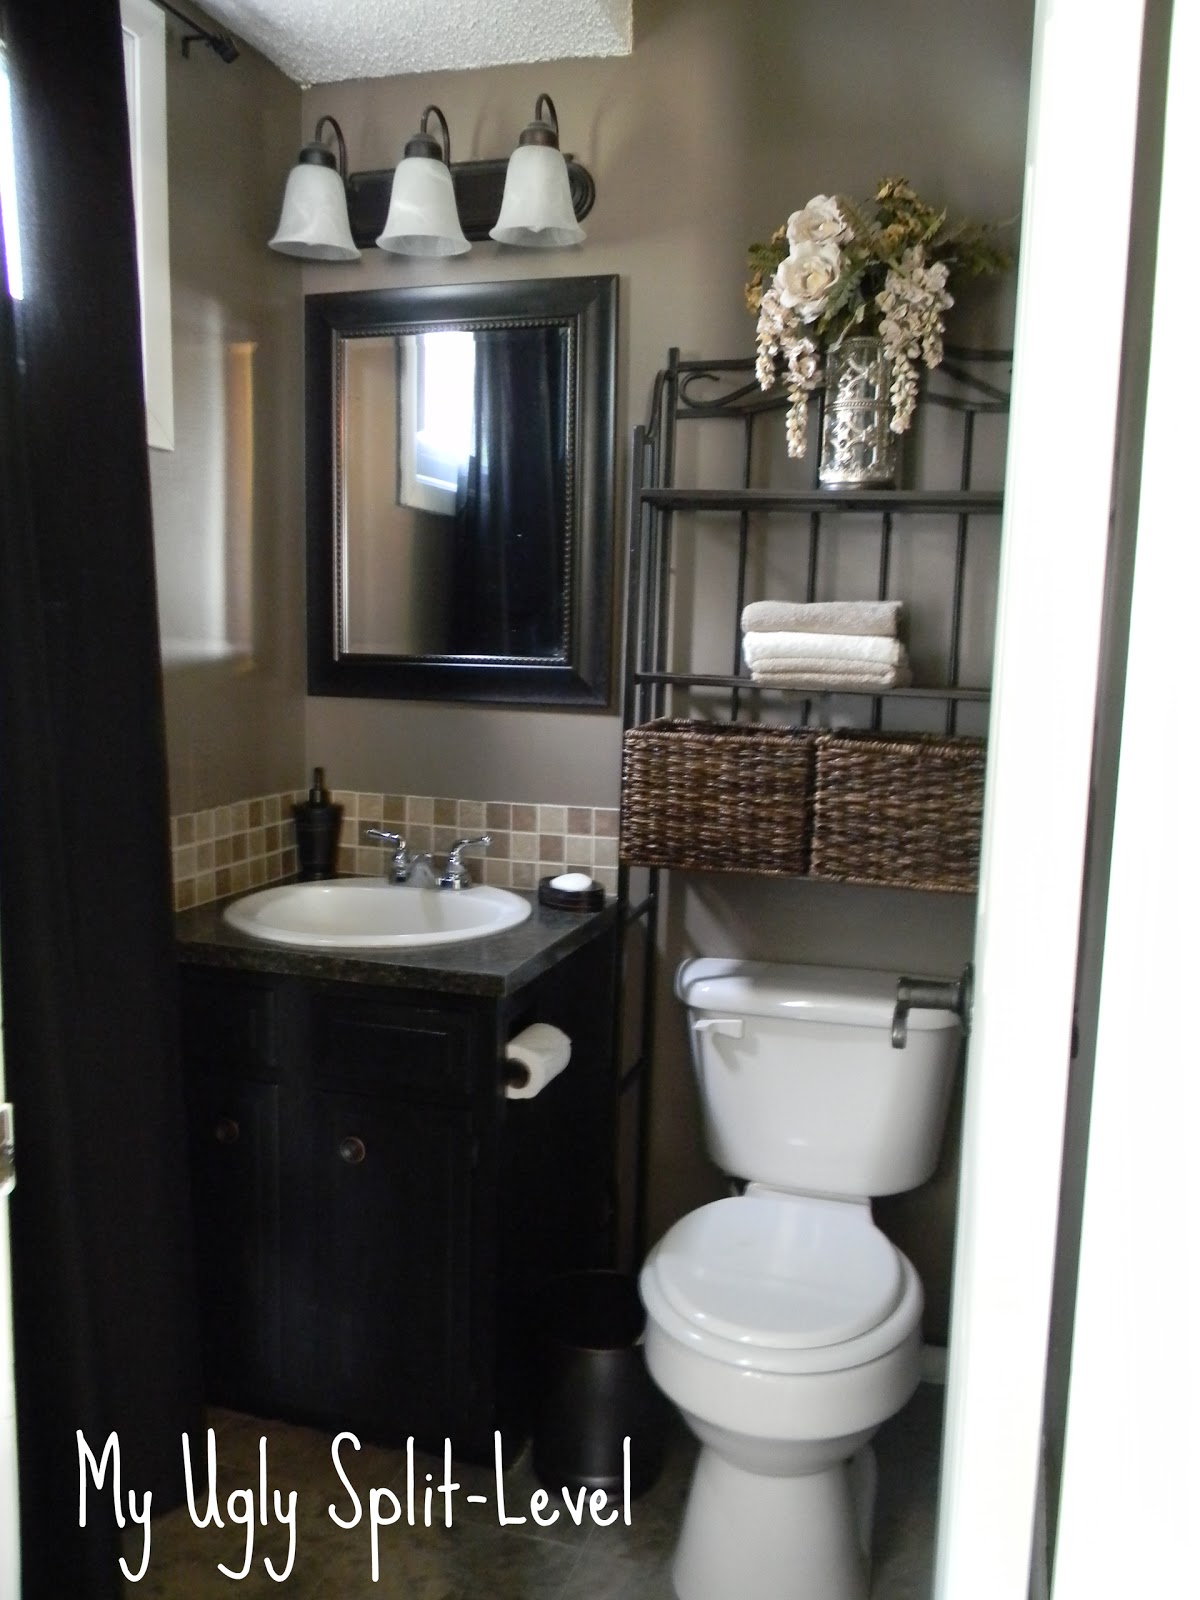 Ugly Bathroom Decorating Ideas : My ugly split level the back bathroom